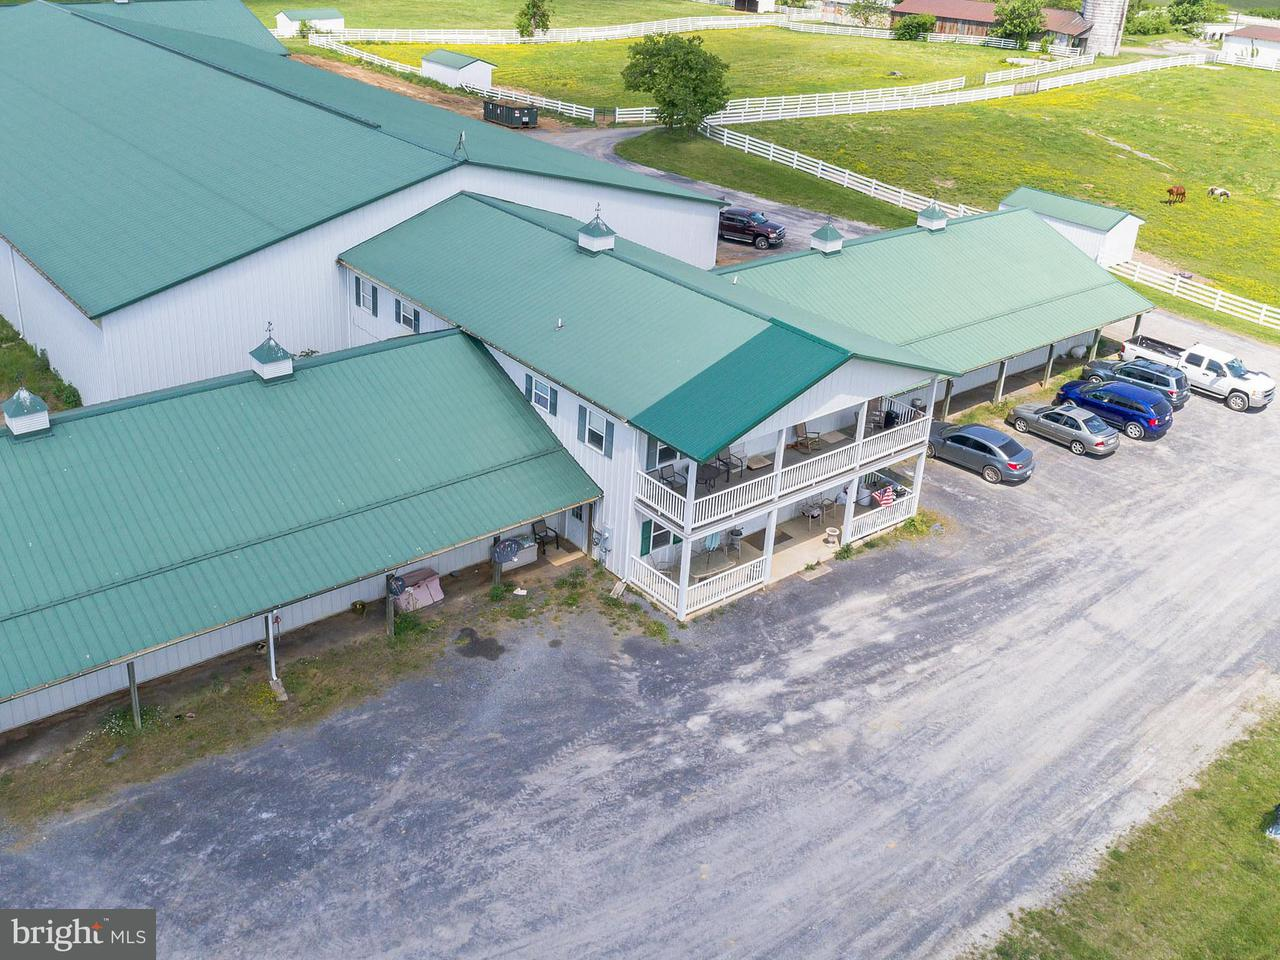 Commercial for Sale at 14988 LORD FAIRFAX HWY 14988 LORD FAIRFAX HWY White Post, Virginia 22663 United States